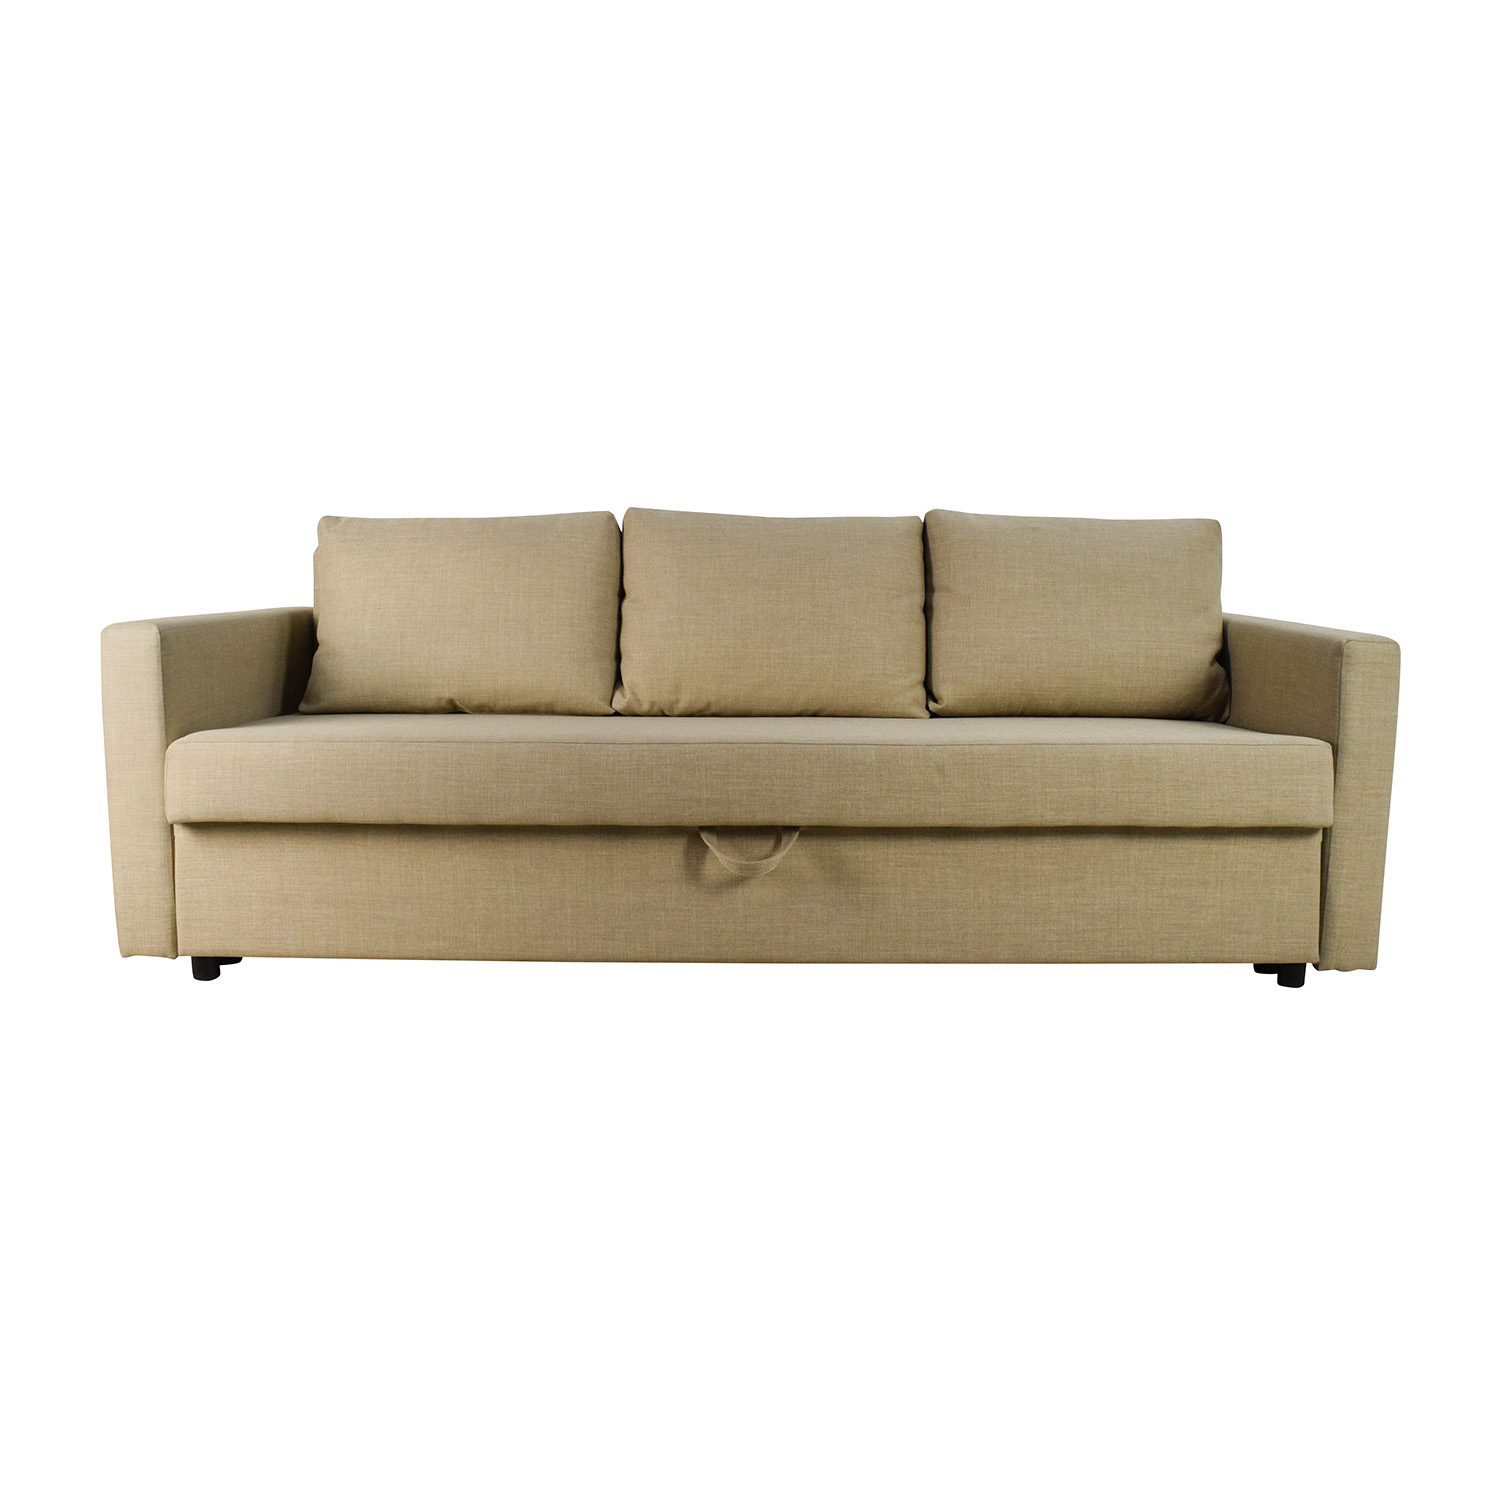 IKEA FRIHETEN Sleeper Sofa with Storage price